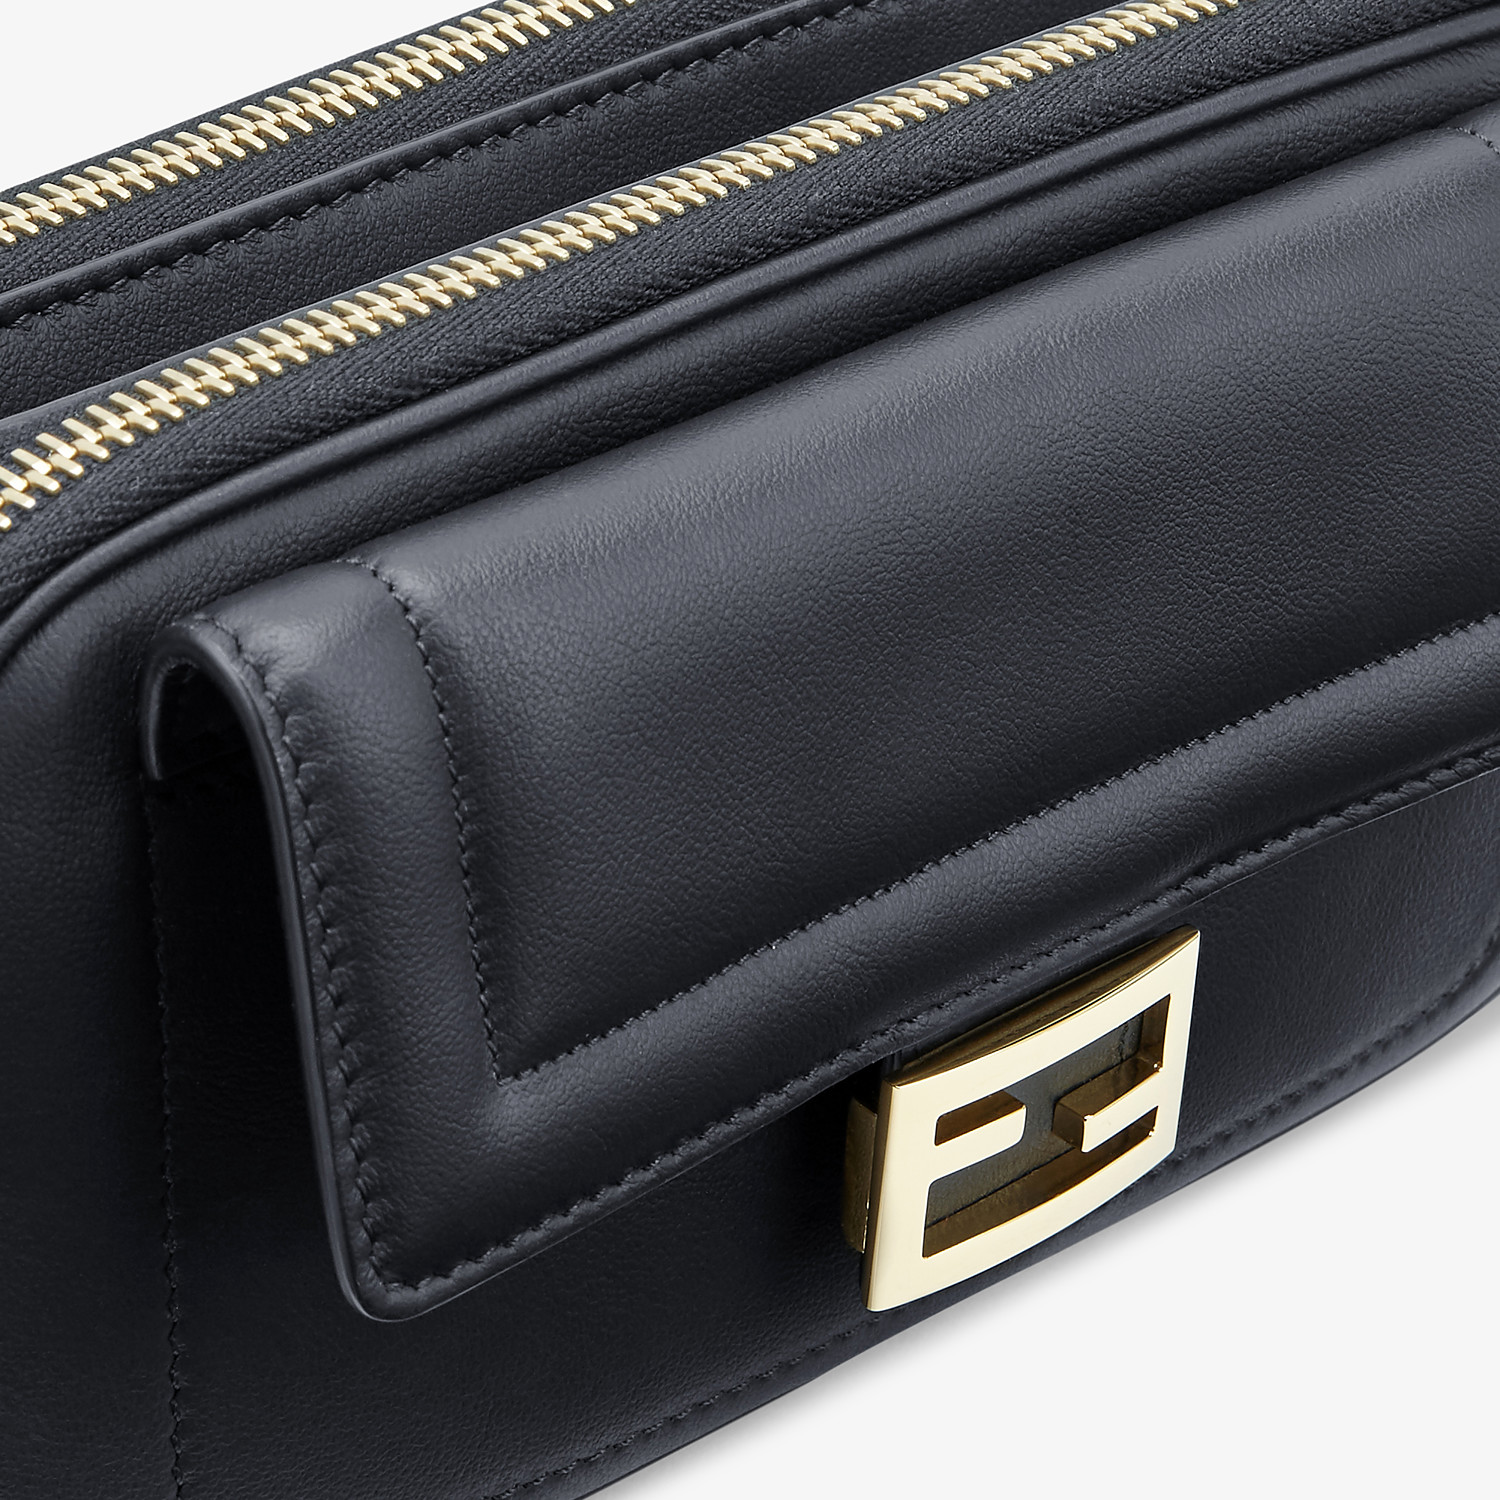 FENDI EASY 2 BAGUETTE - Black leather mini-bag - view 6 detail